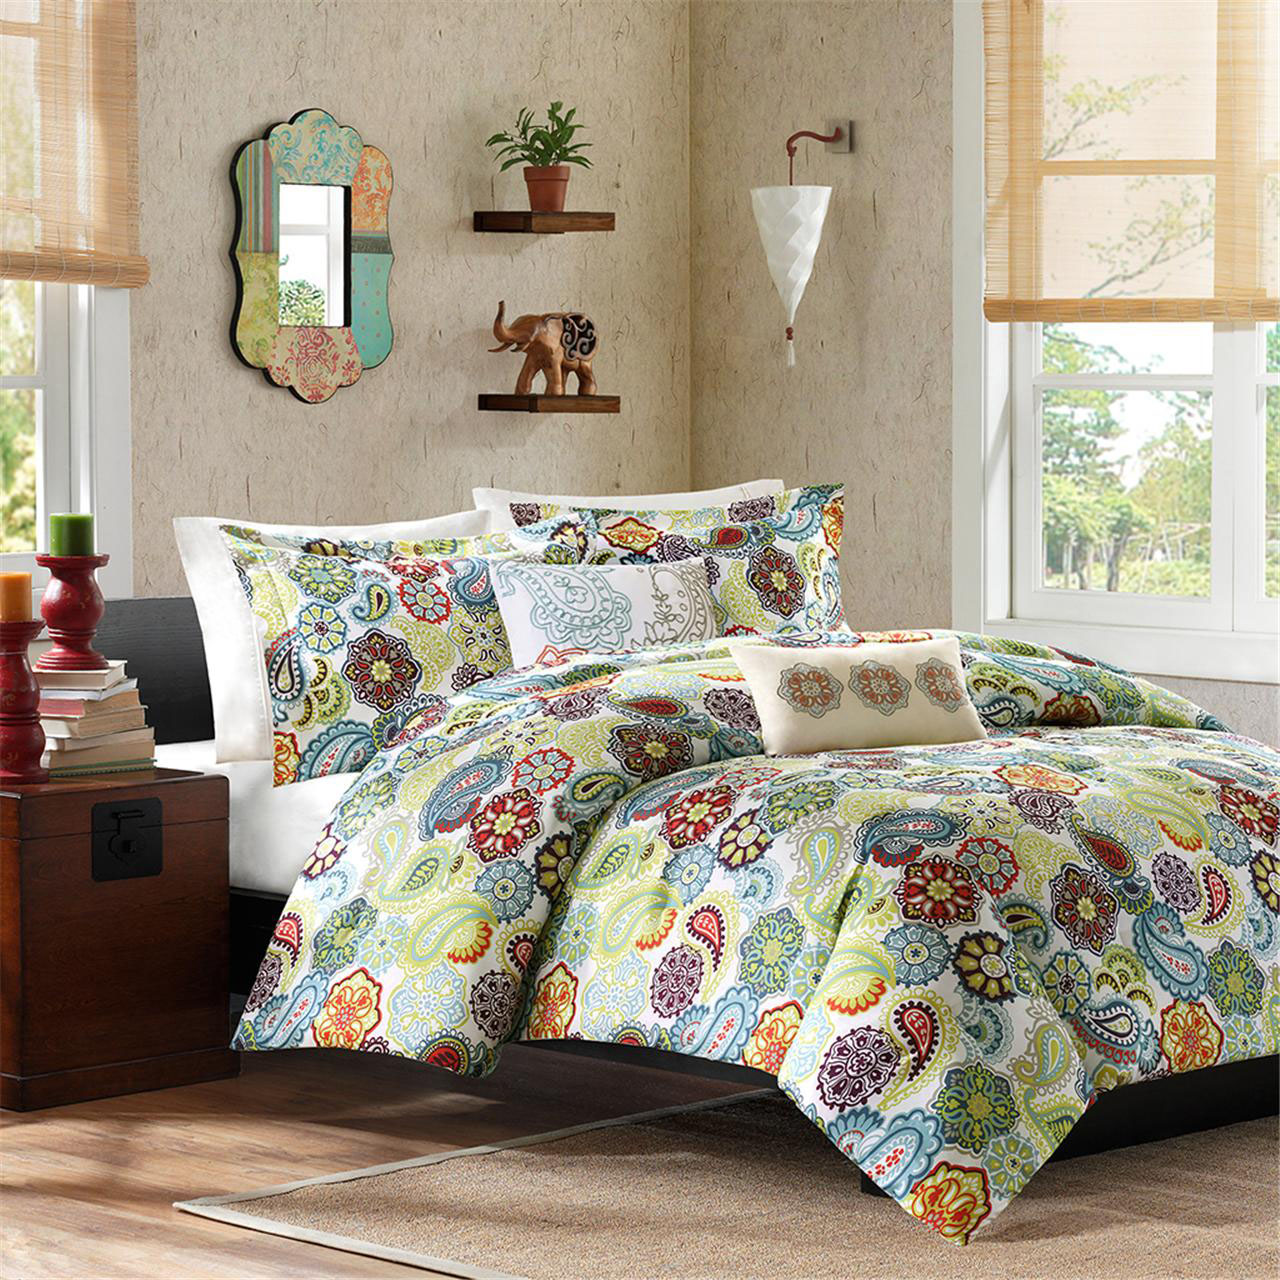 Tamil King Comforter Bedding Set